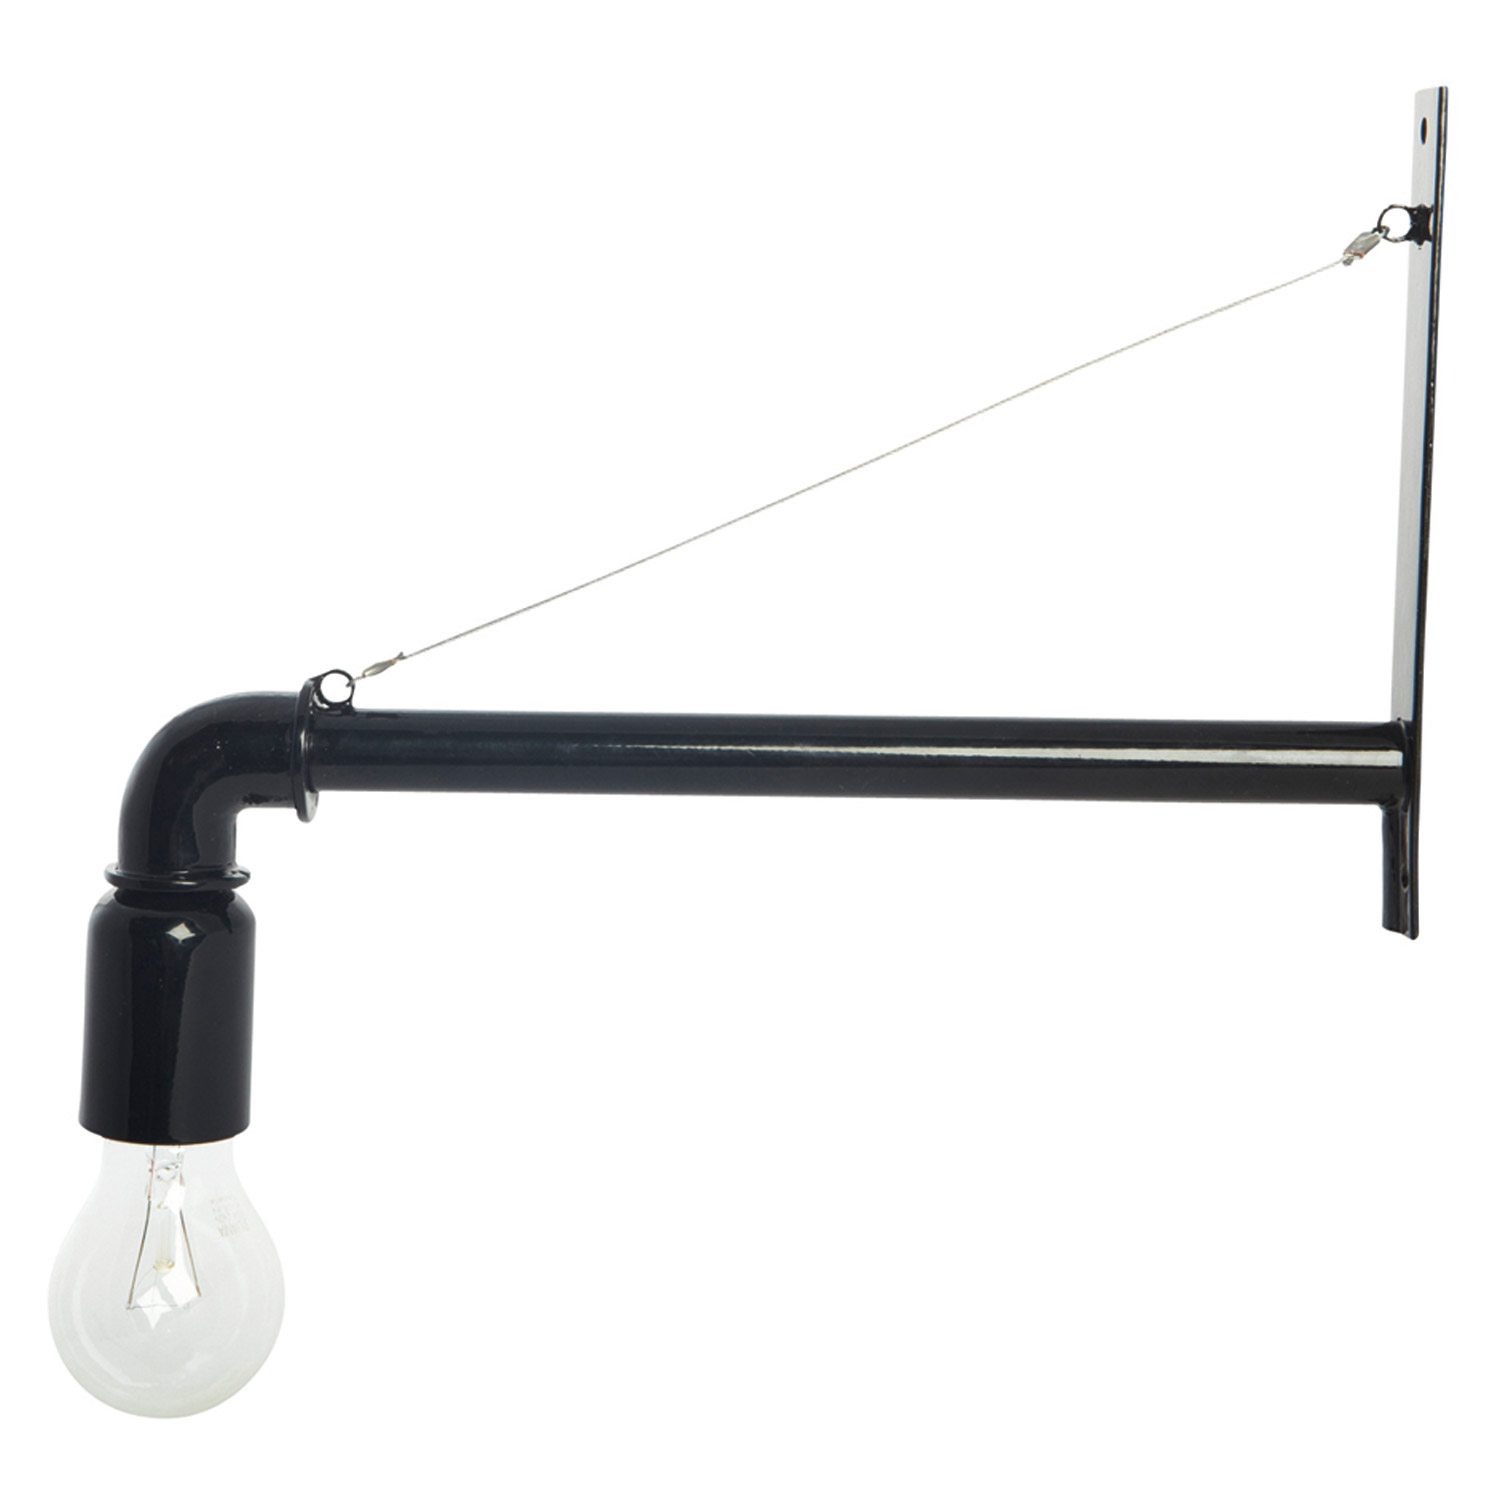 Pipe lampa, svart fr̴n house doctor Рk̦p online p̴ rum21.se